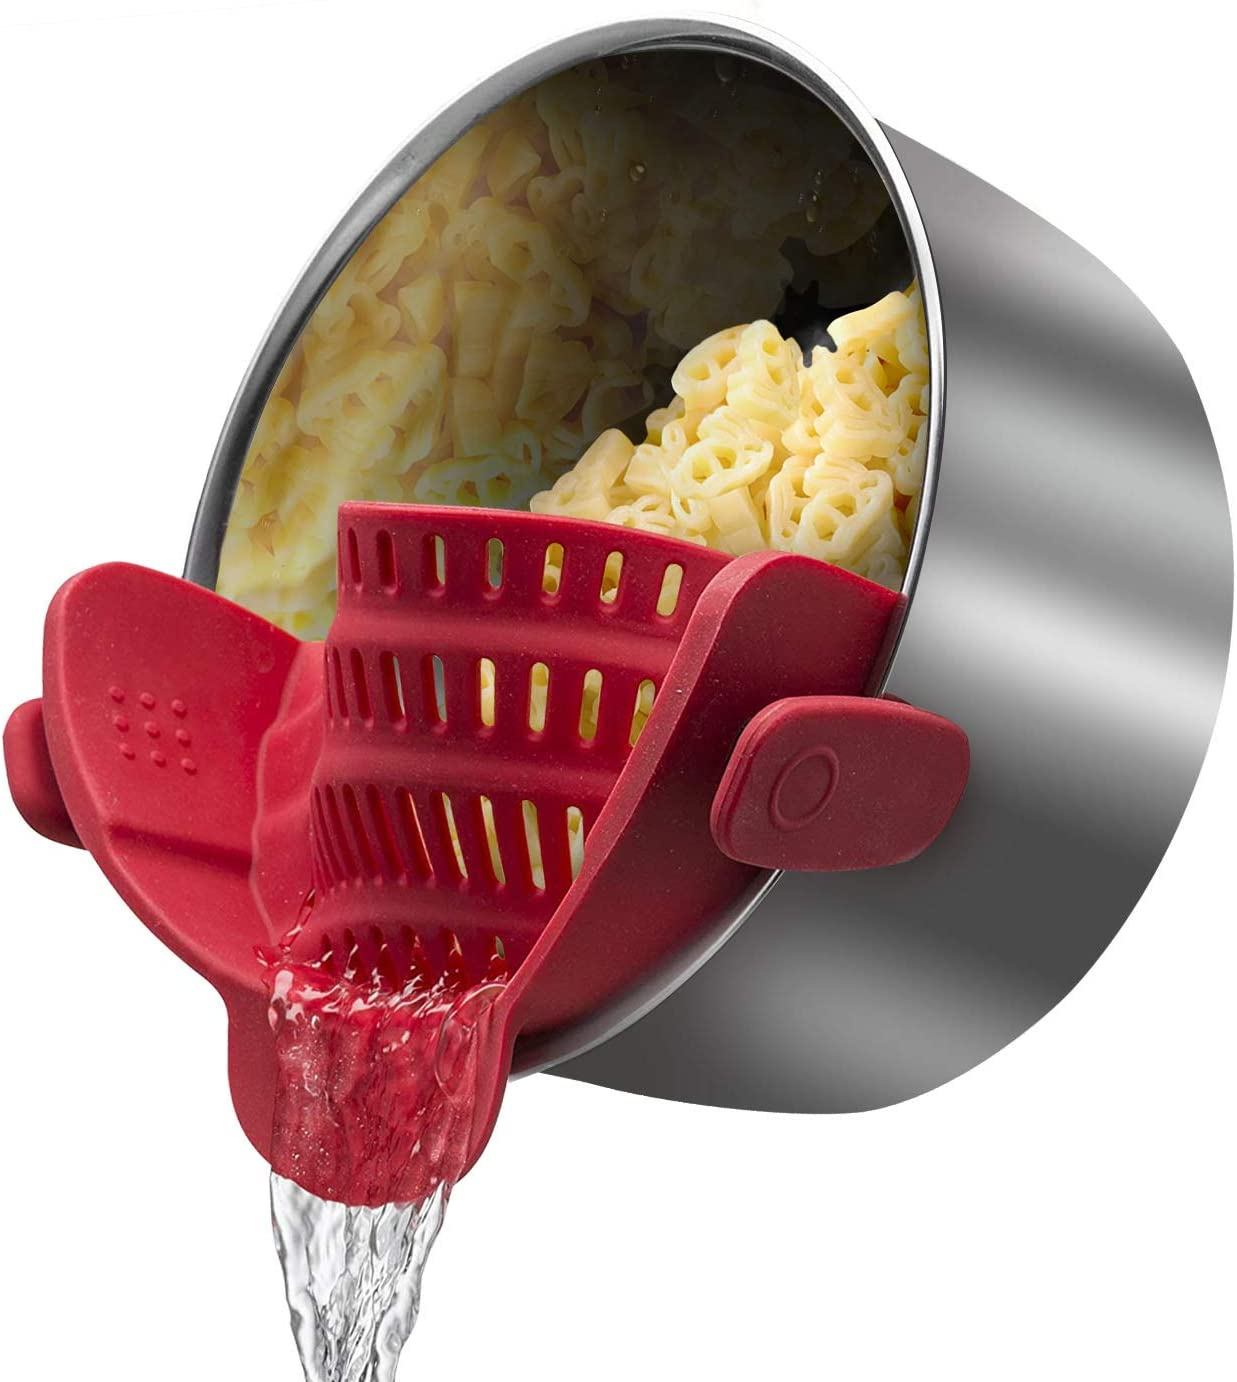 Clip-On Strain Strainer for Spaghetti, Pasta, and Ground Beef Grease, Colander and Sieve Snaps On Bowls,Fits all Pots and Bowls,PDA Approved, Heat Resistant Silicone(Red)